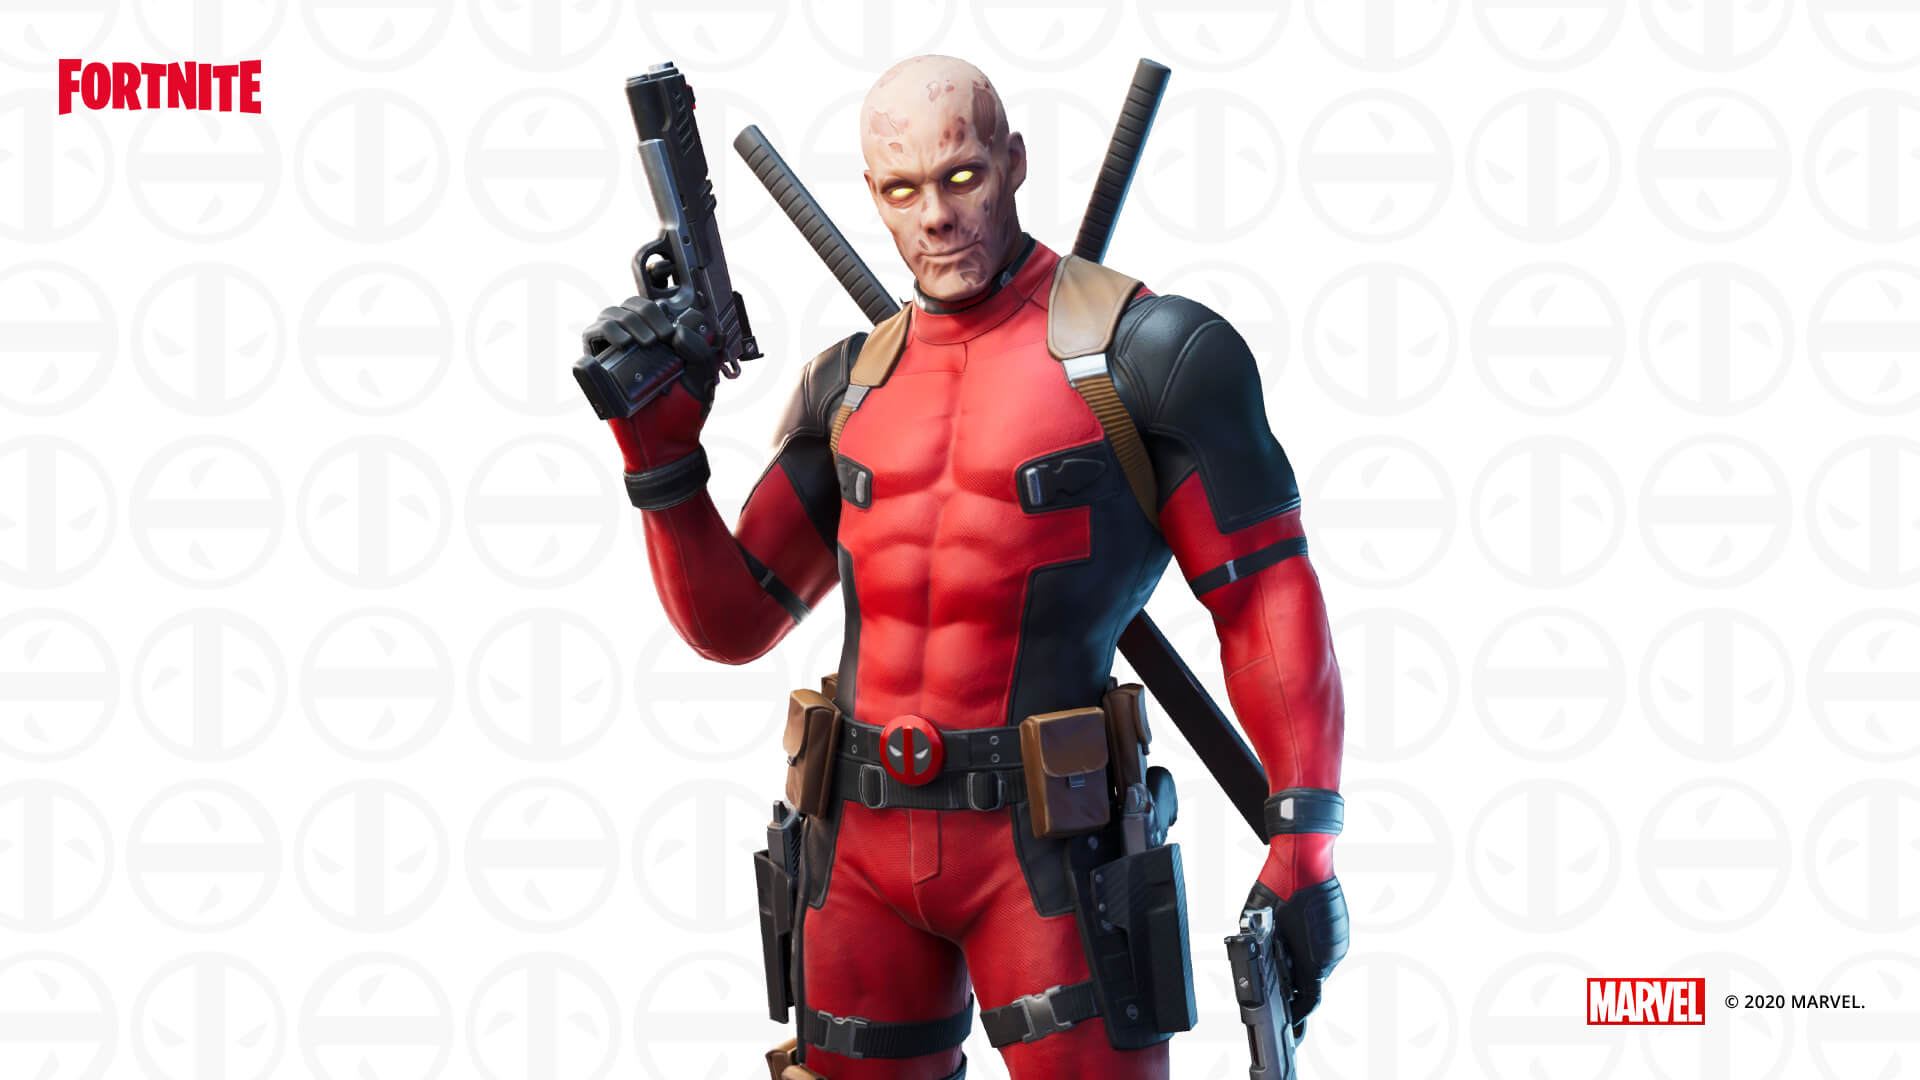 deadpool-without-mask-fortnite-outfit.jpg